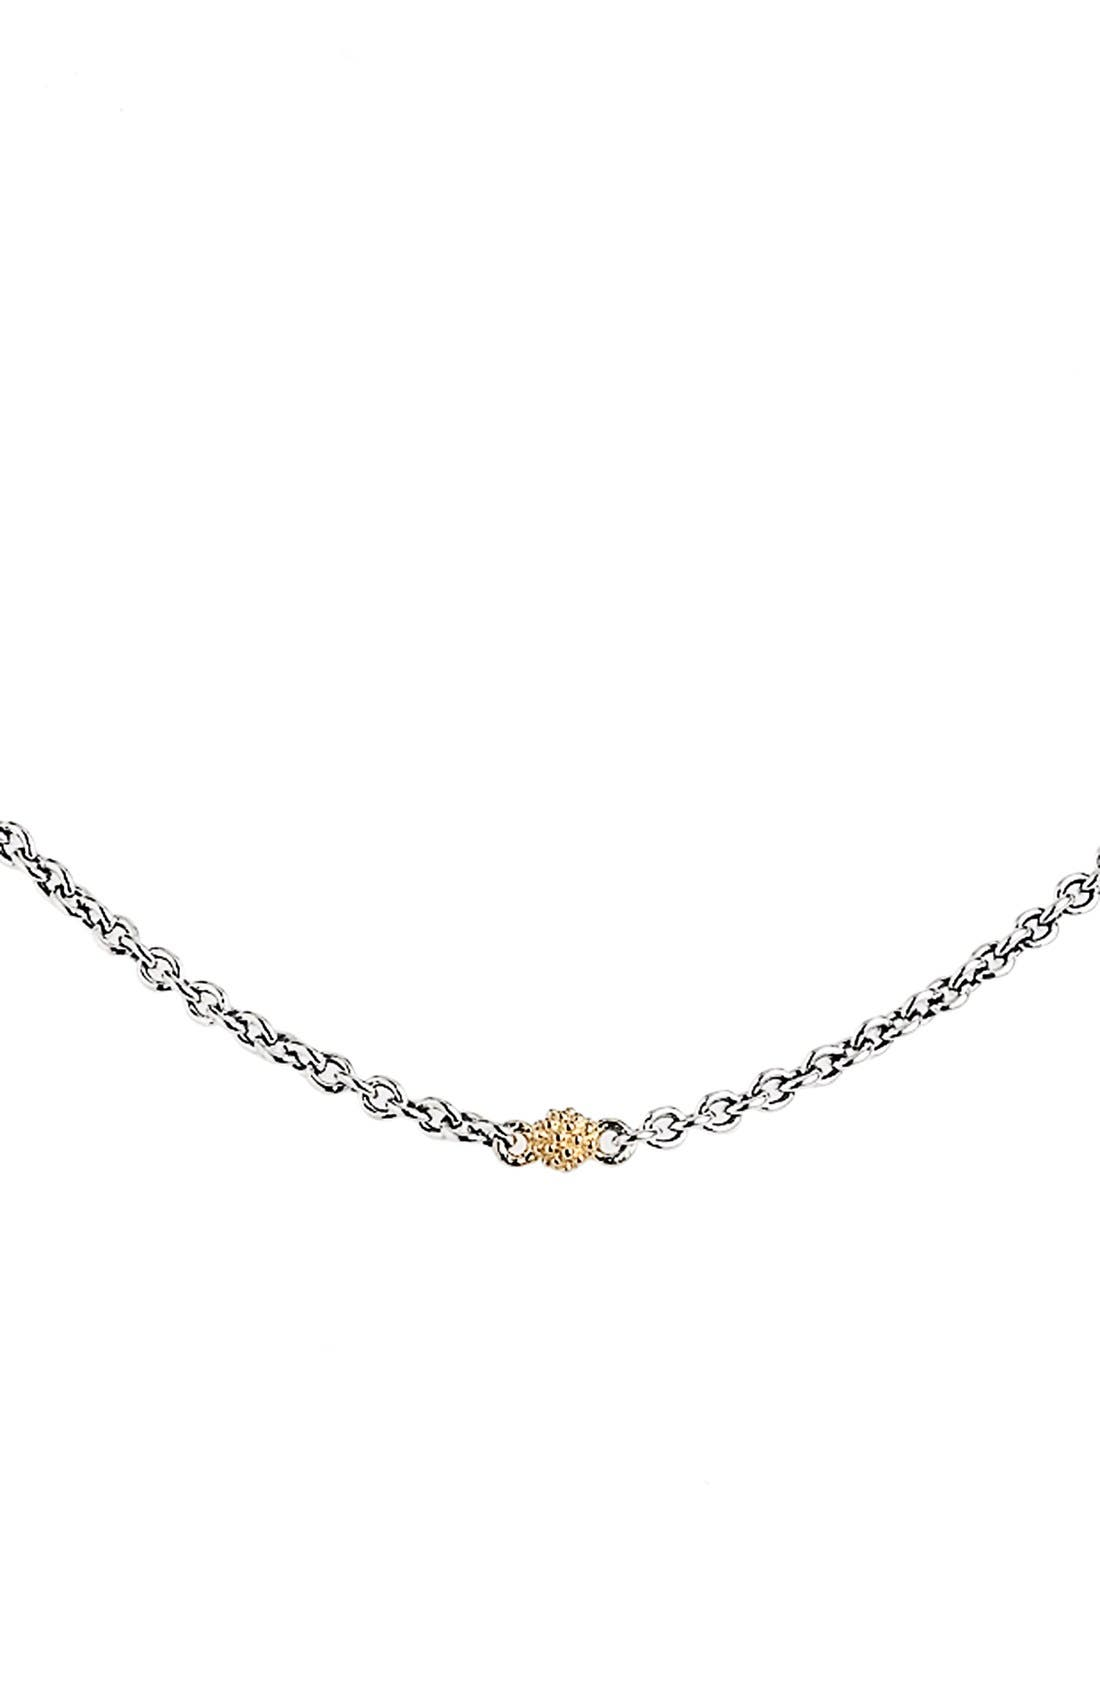 Alternate Image 1 Selected - LAGOS Caviar Station Two Tone Necklace